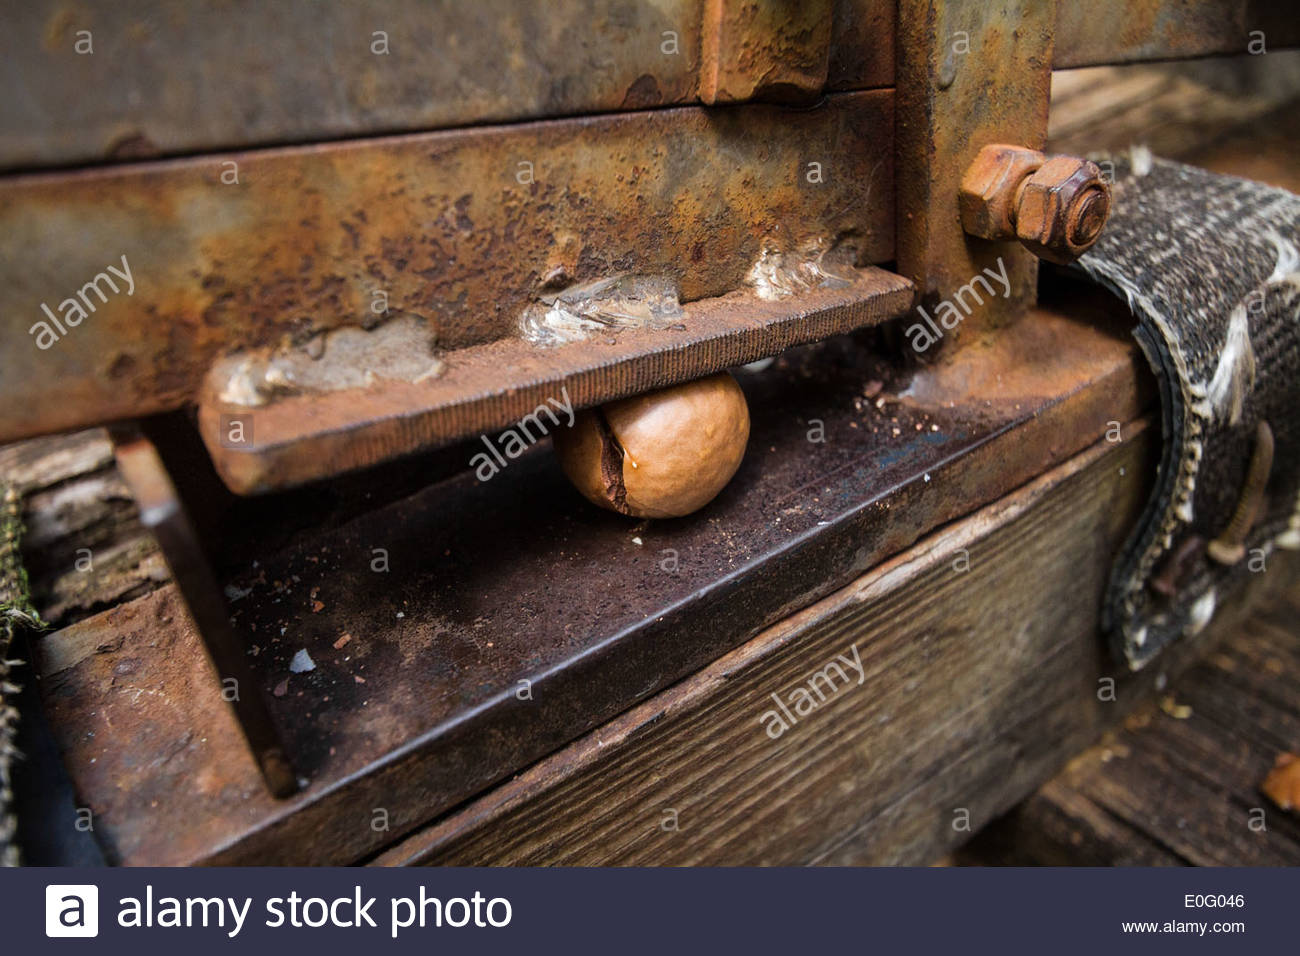 Crushing a Macadamia nut in a vise, Hawaii - Stock Image